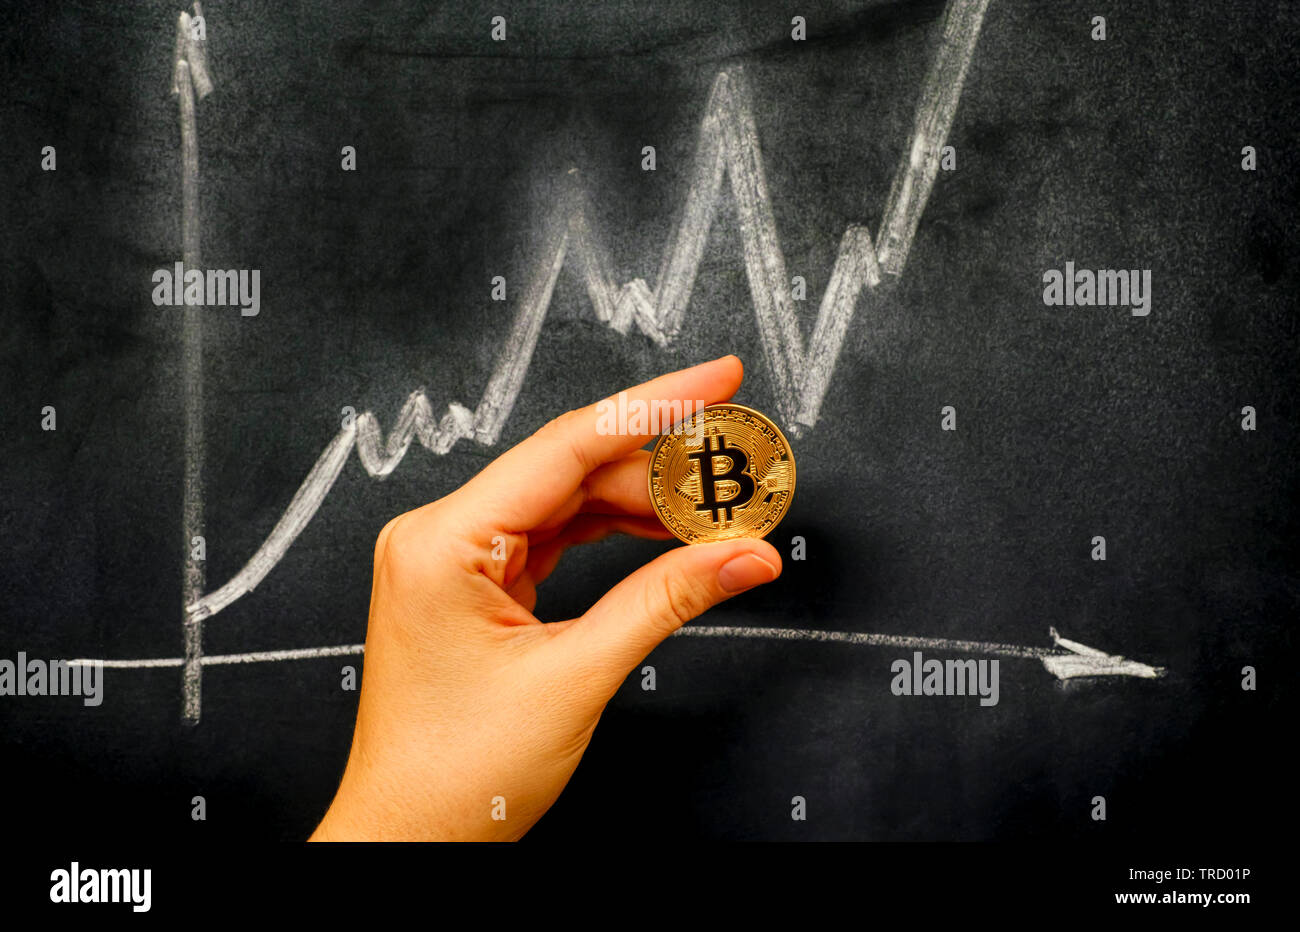 Golden Bitcoin virtual coin in human hand against blackboard with chalk drawing graph. Close-up. - Stock Image